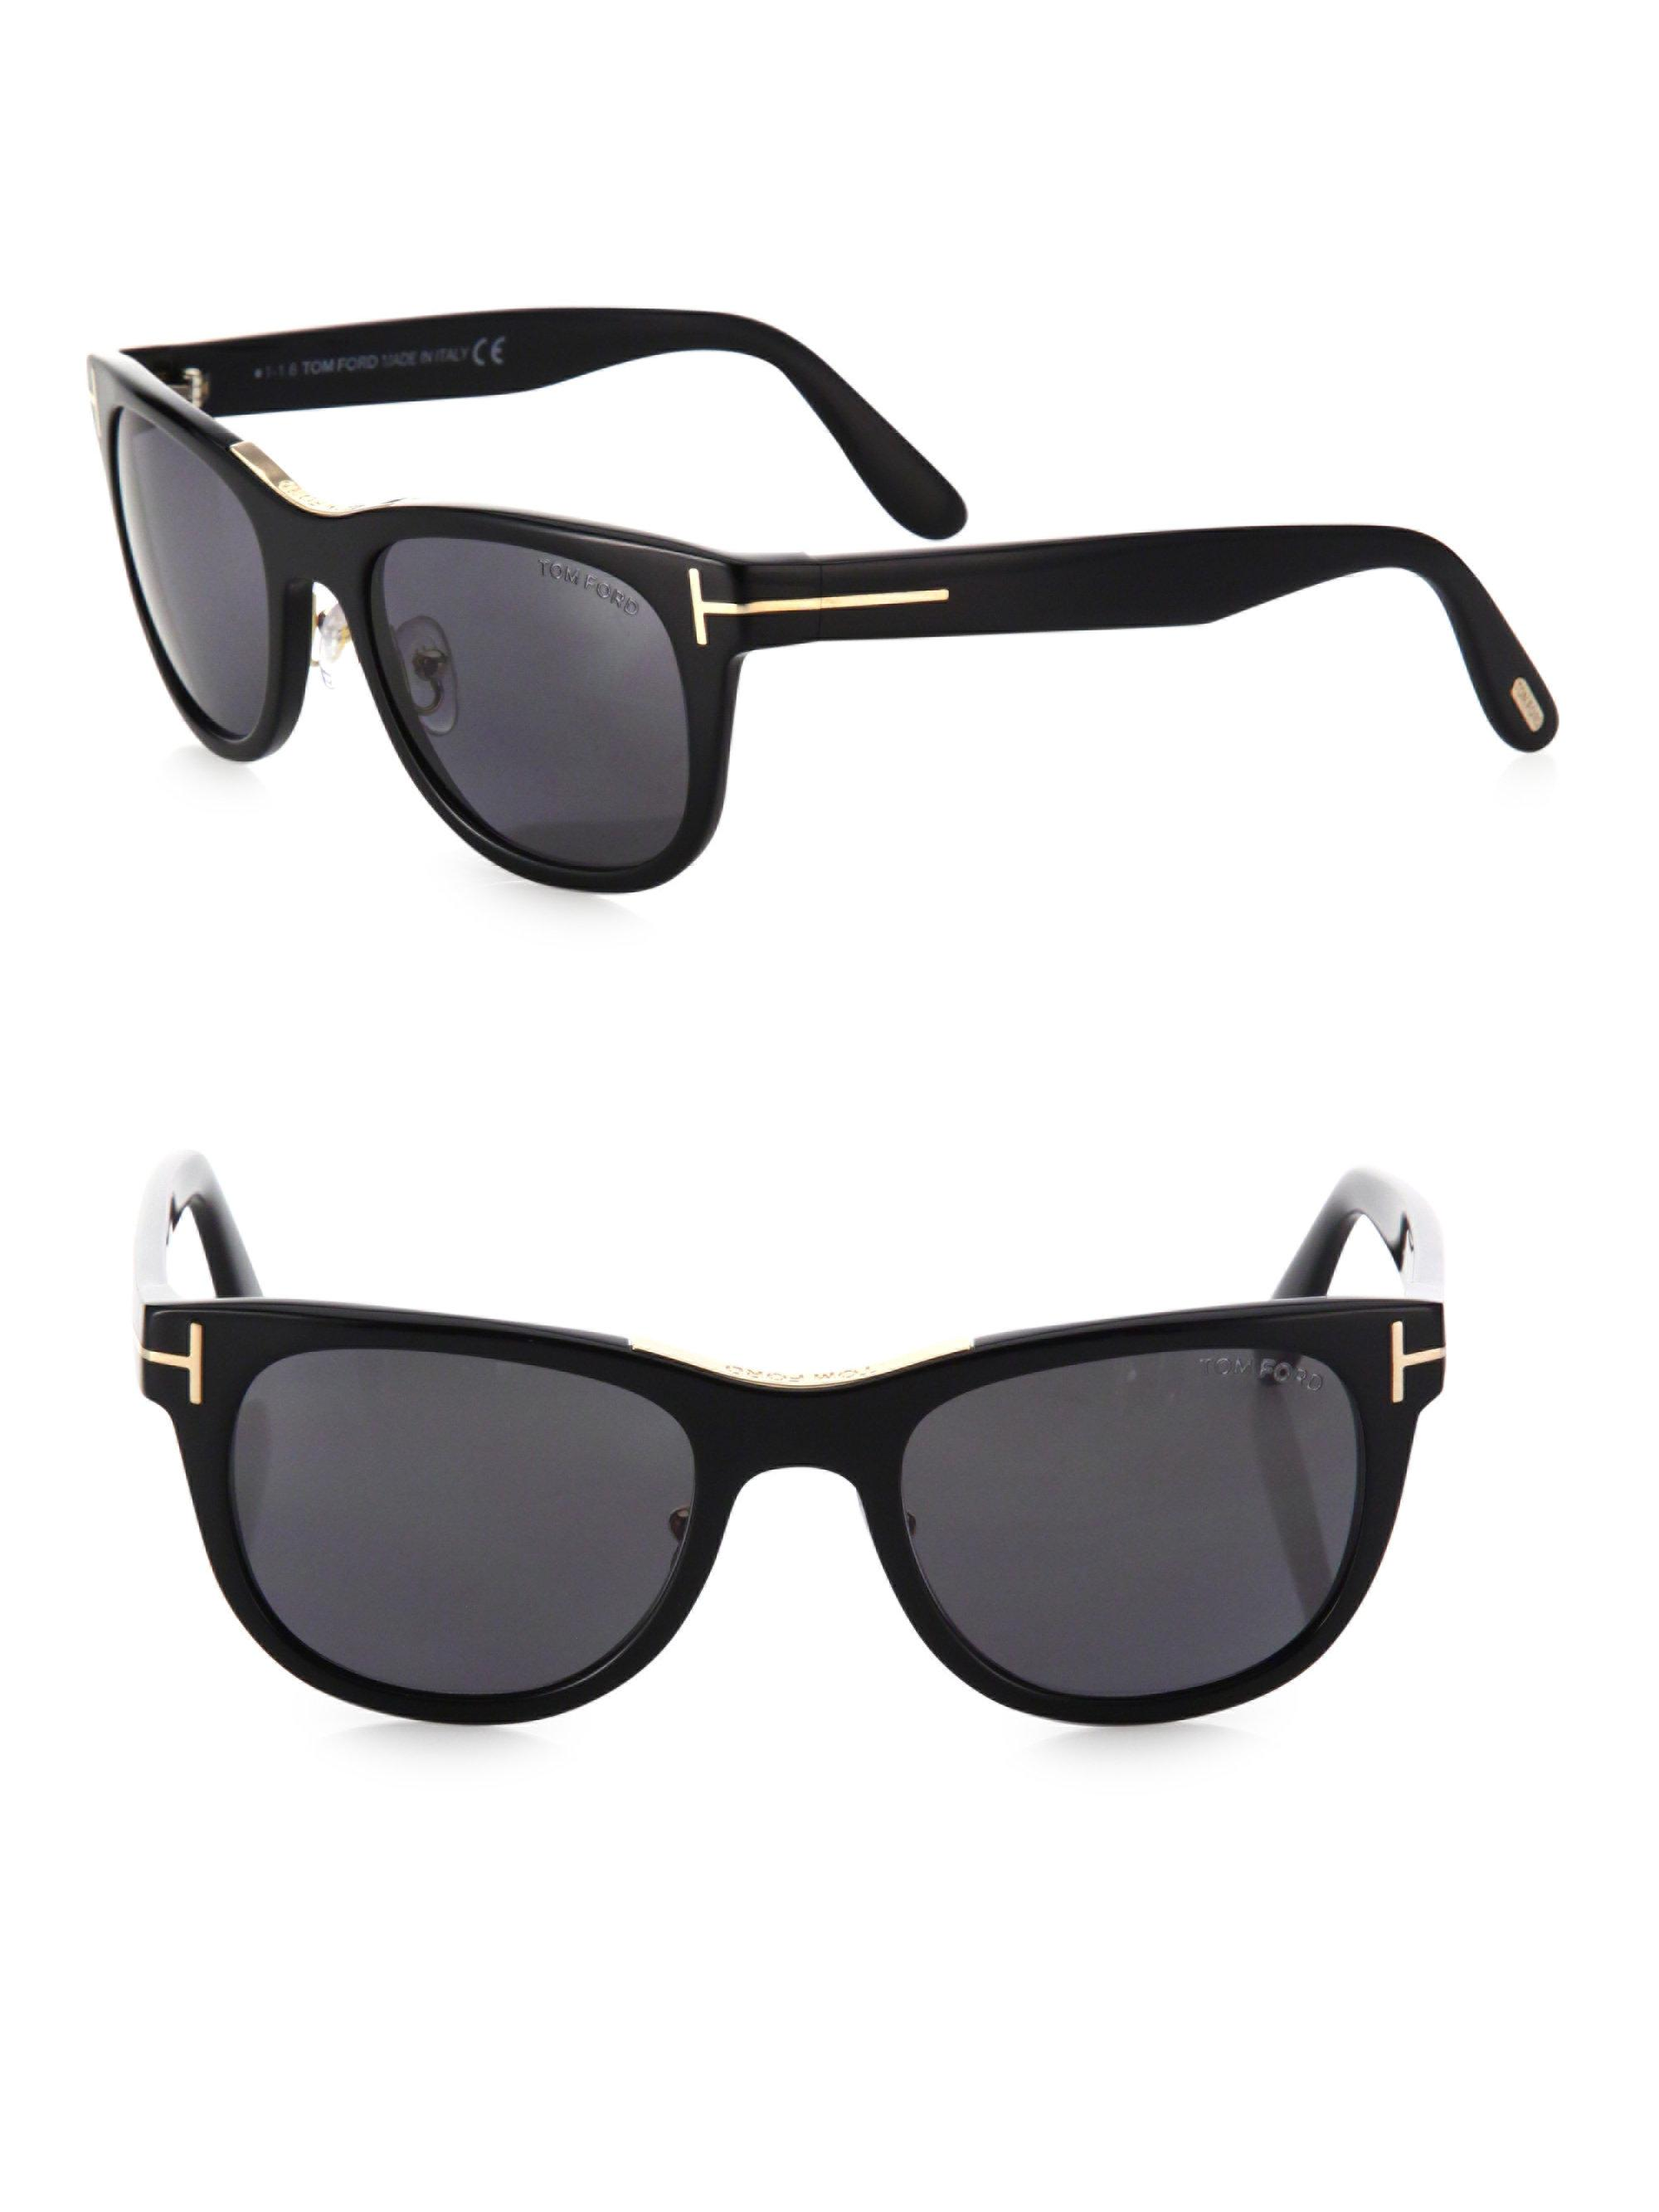 2087c70e8ab8 Lyst - Tom Ford Jack 51mm Polarized Sunglasses in Black for Men